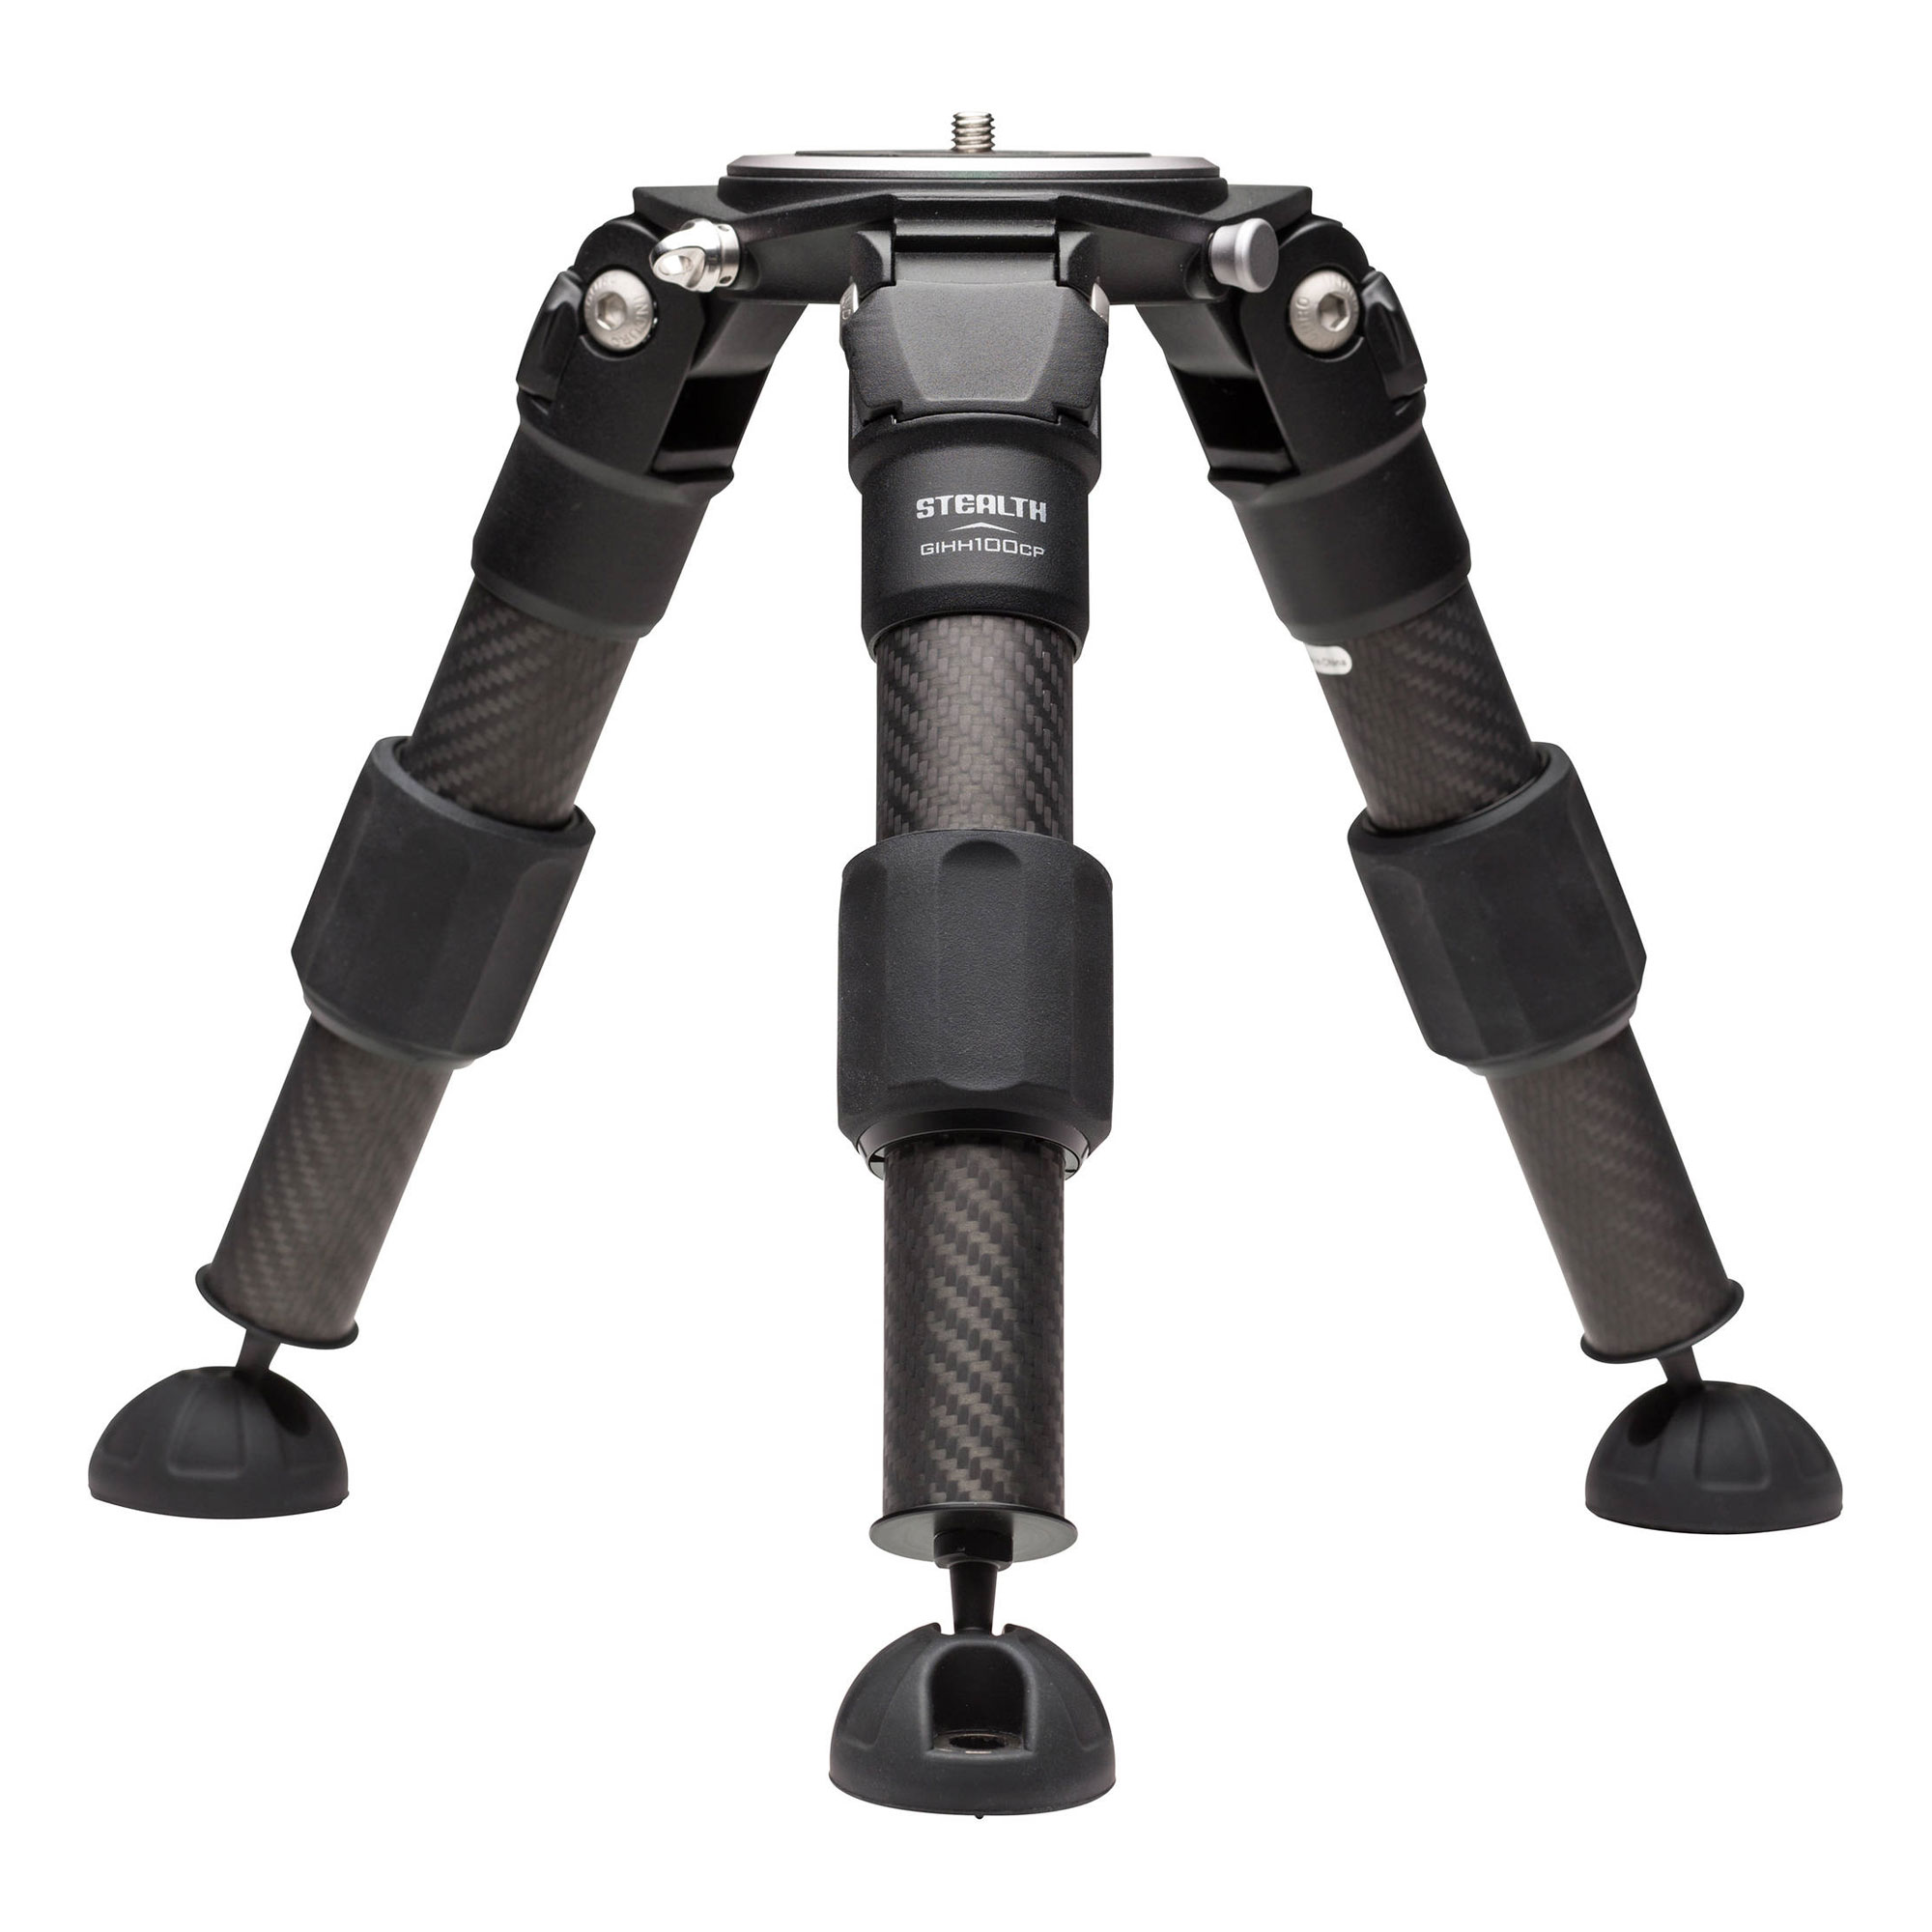 Series 4 Baby Grand Tripod with 100mm Platform